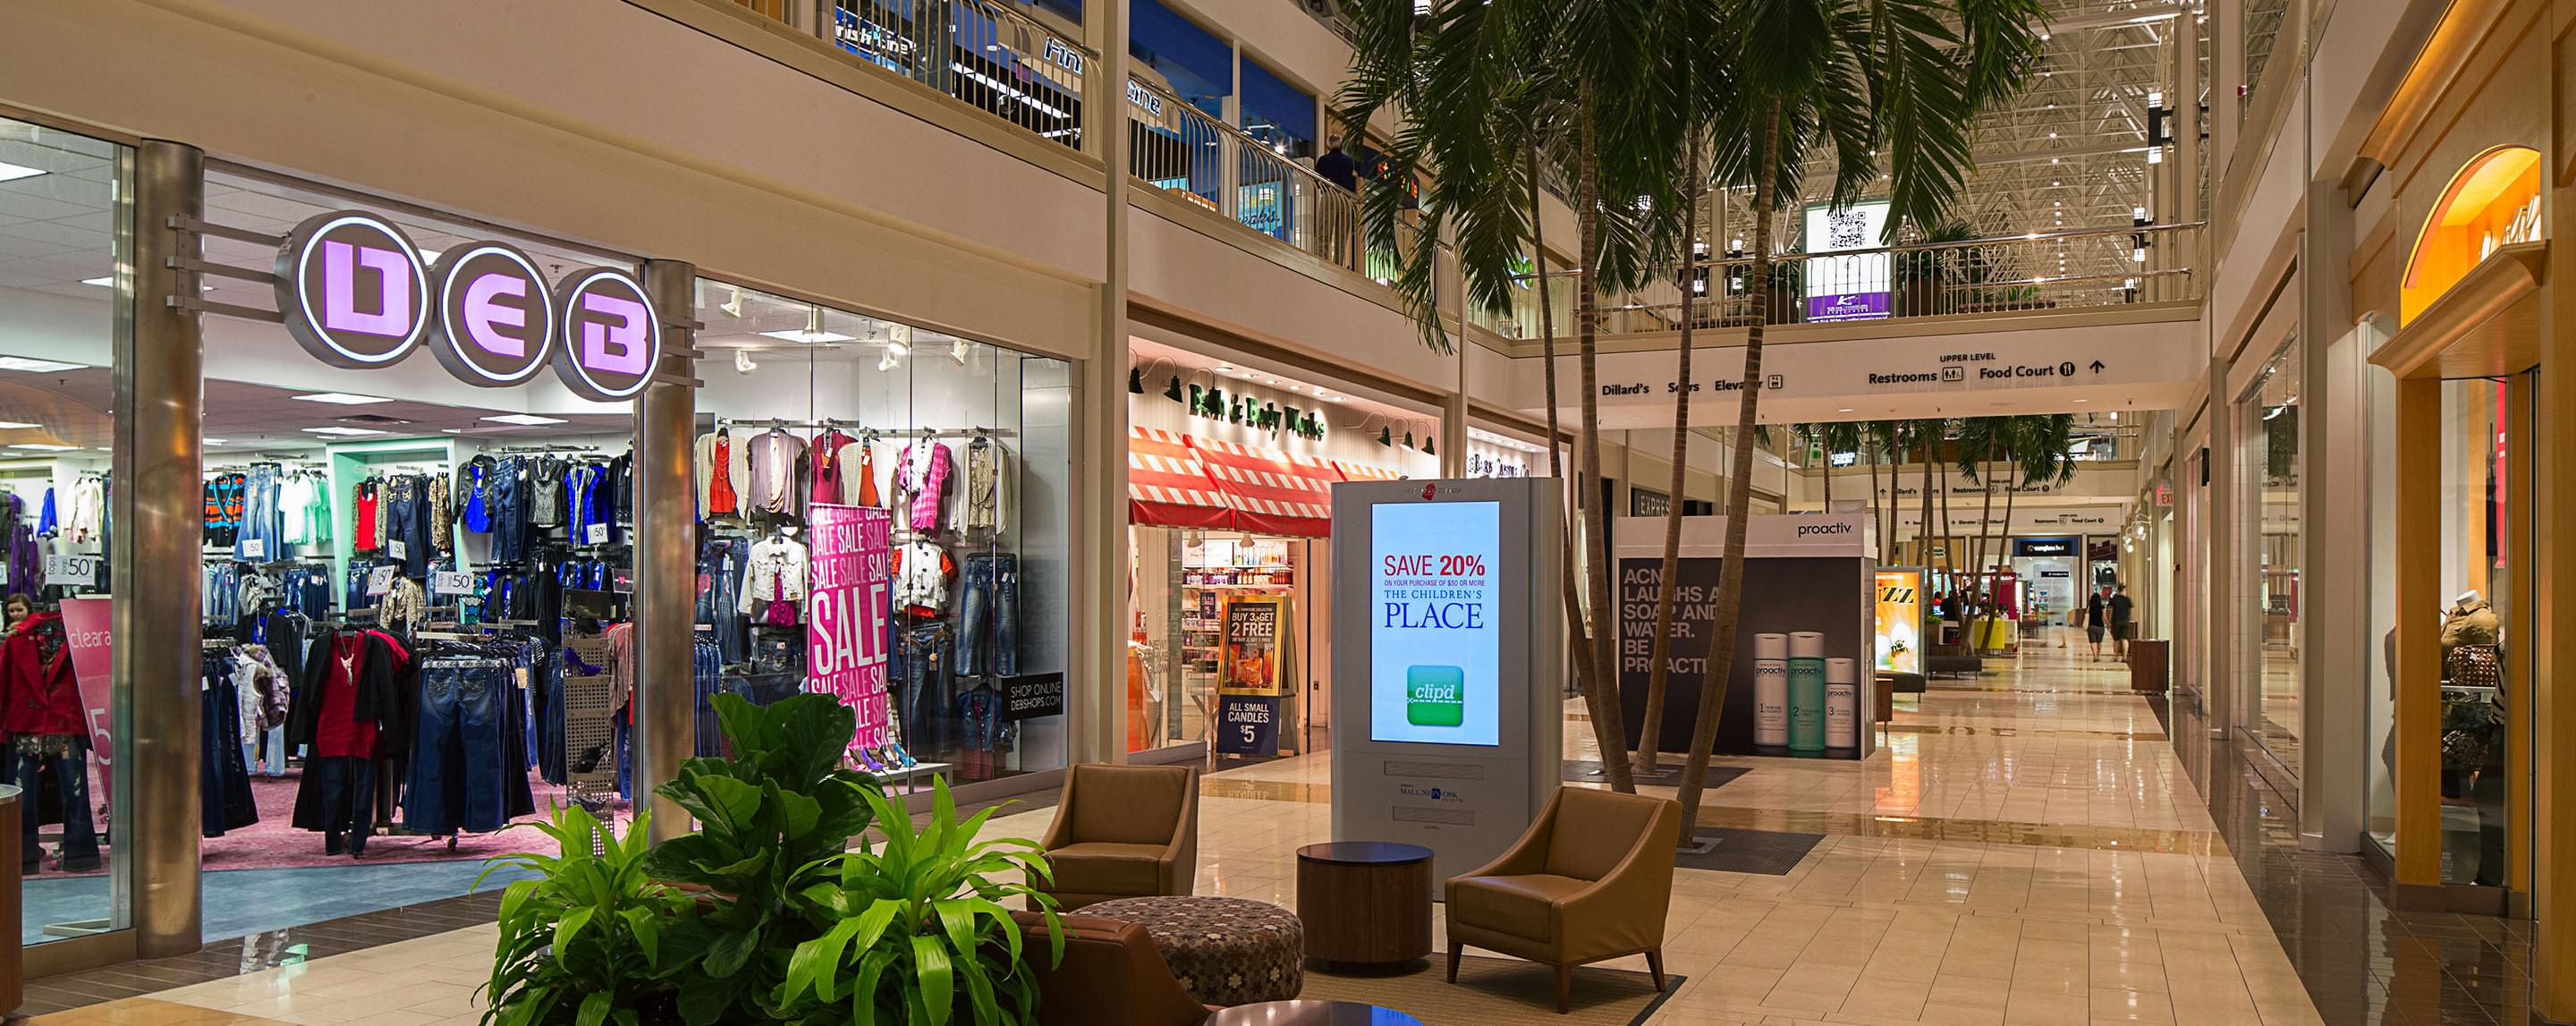 In the Hulen Mall's lower level walkway, shoppers have the option to peer inside store fronts, sit and relax, or search the directory to find something specific.